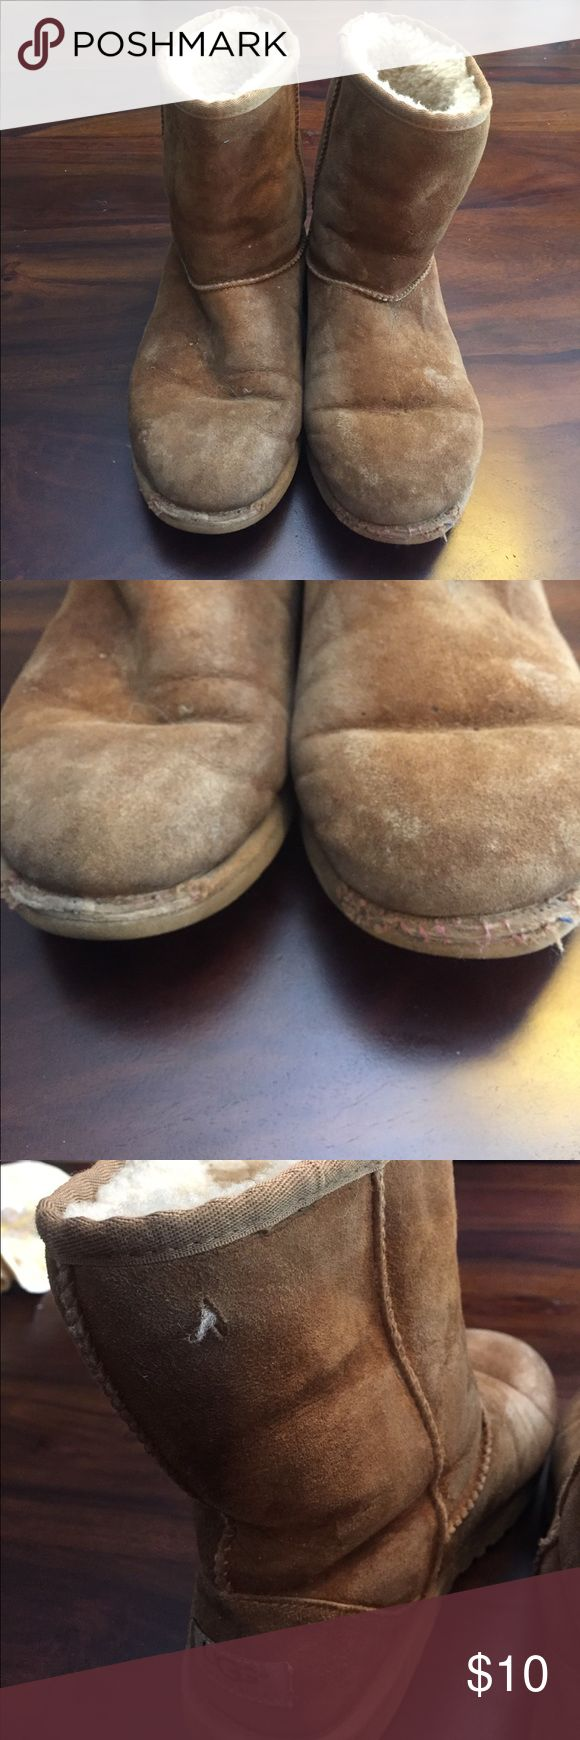 Short Uggs - Chestnut Pretty worn, a little dirty, small scratch in leather, toe ripped. Just trying to get them out of my closet. Please make an offer UGG Shoes Winter & Rain Boots